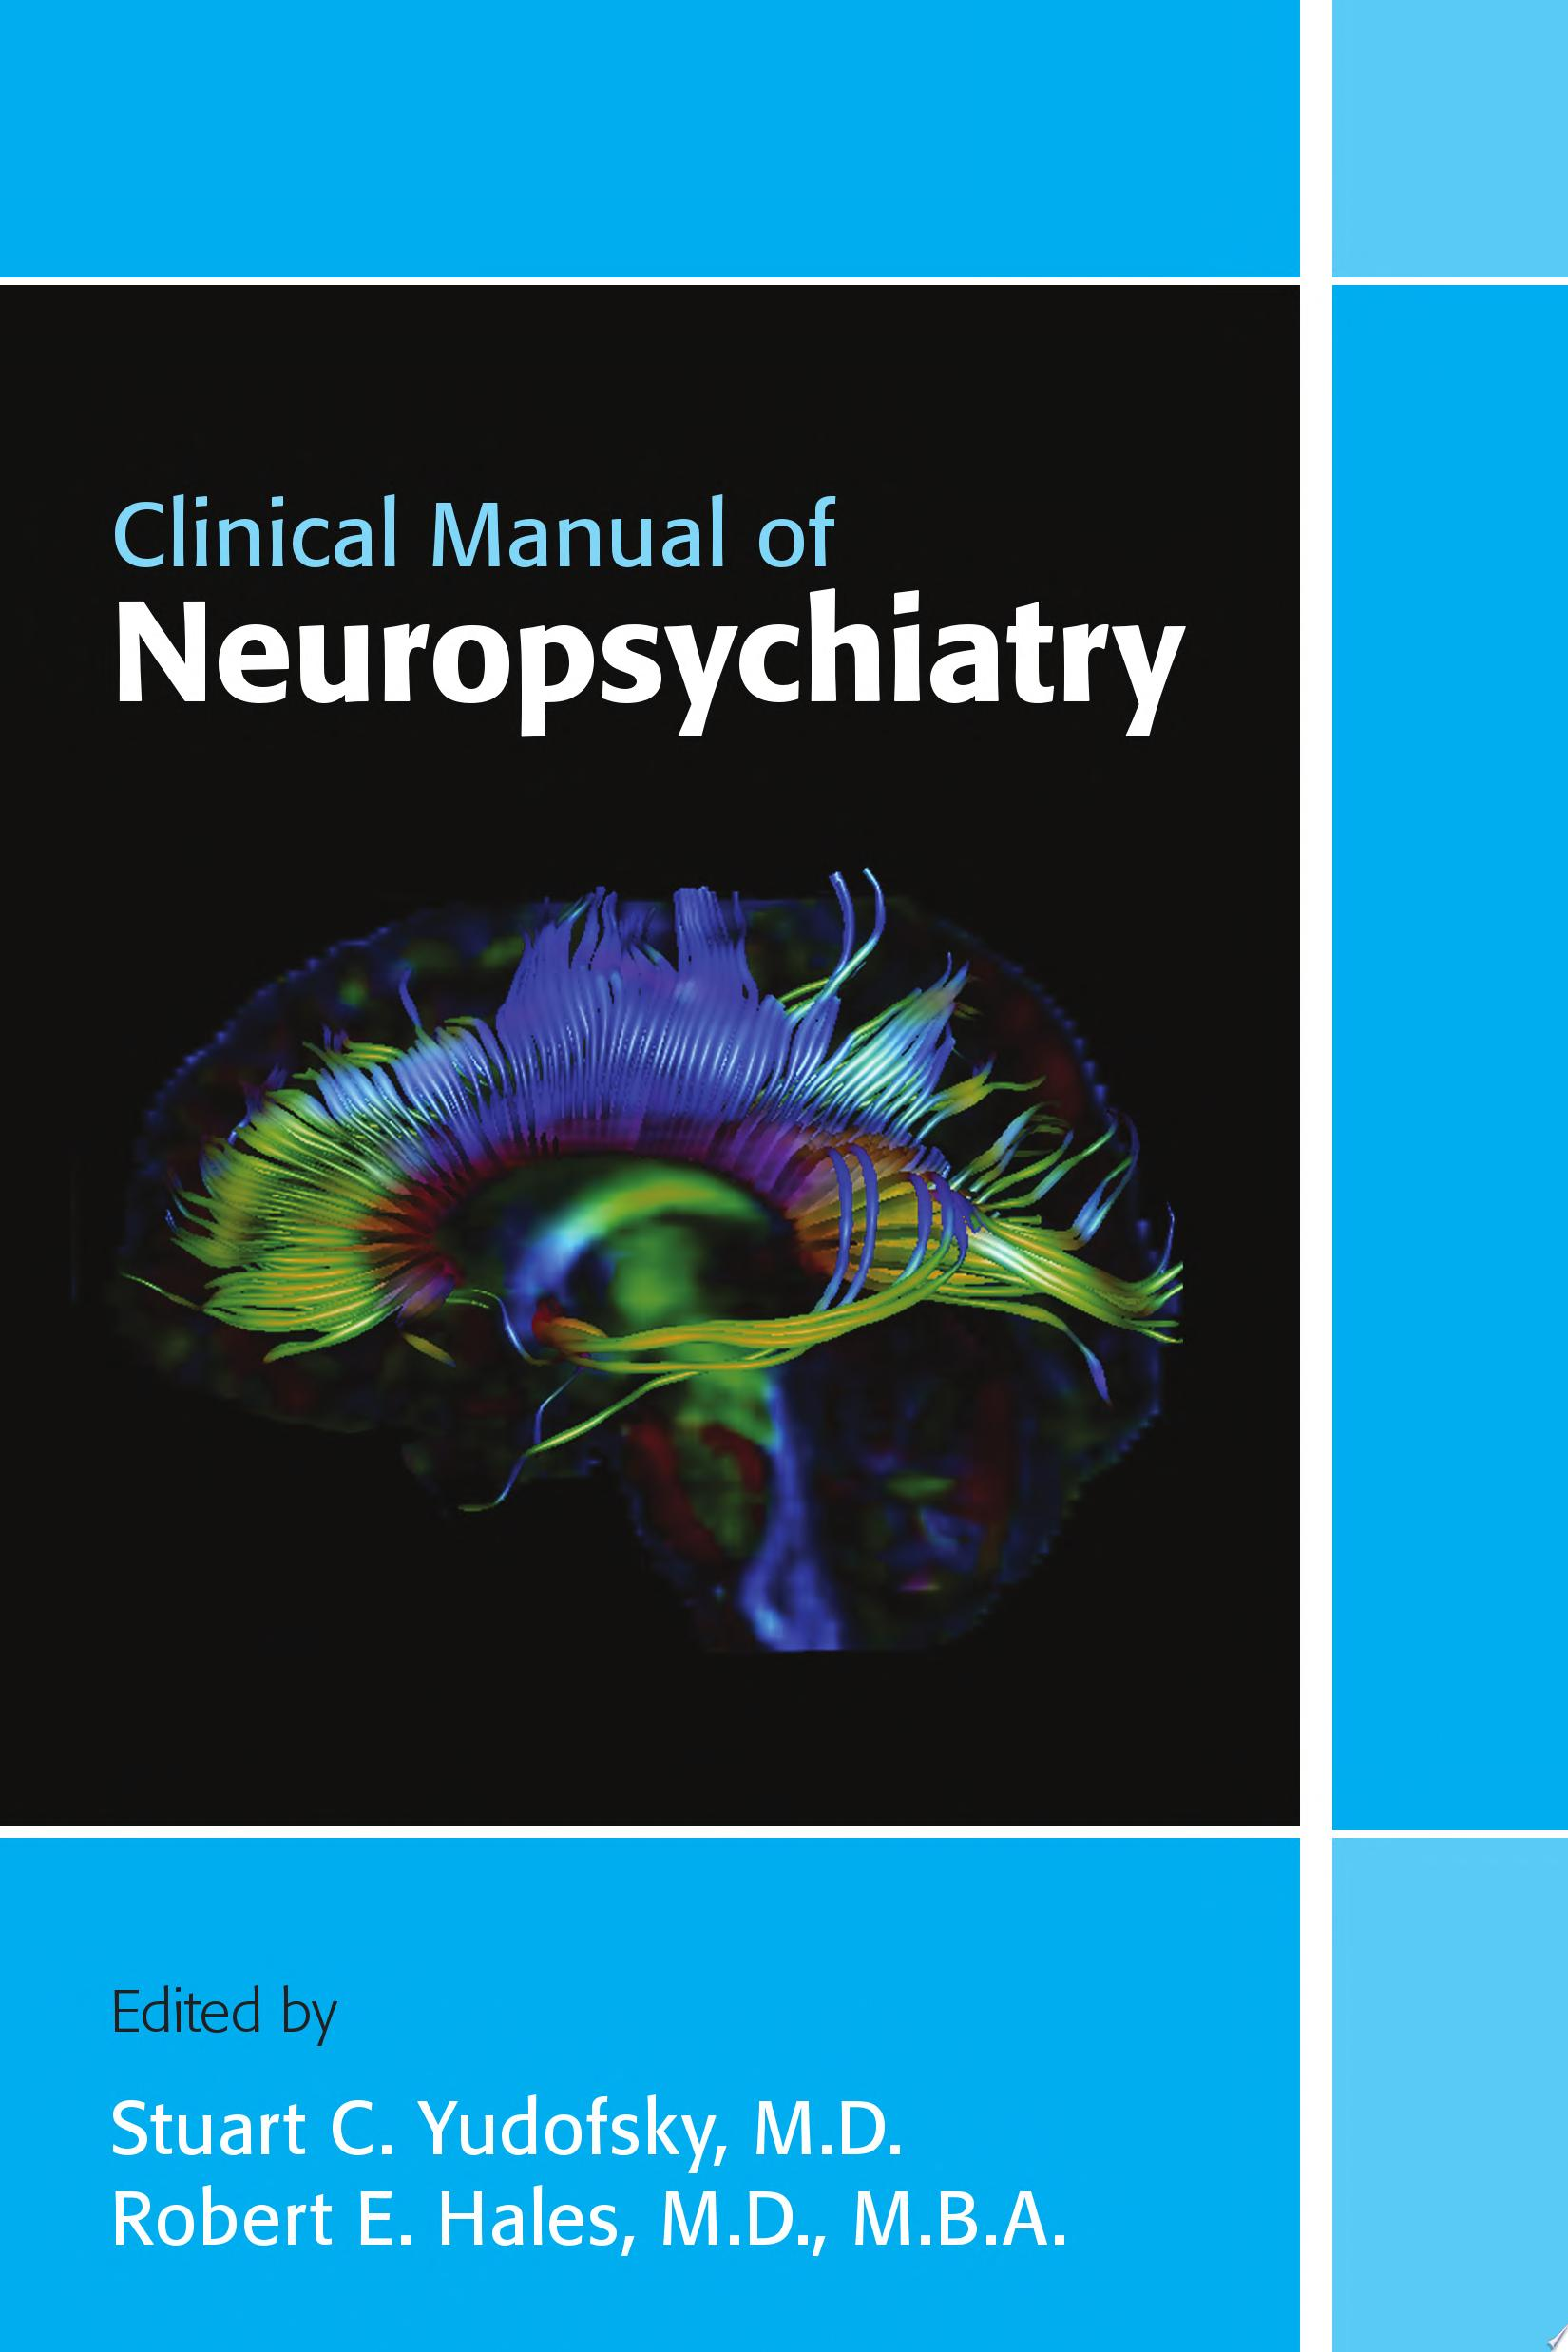 Clinical Manual of Neuropsychiatry